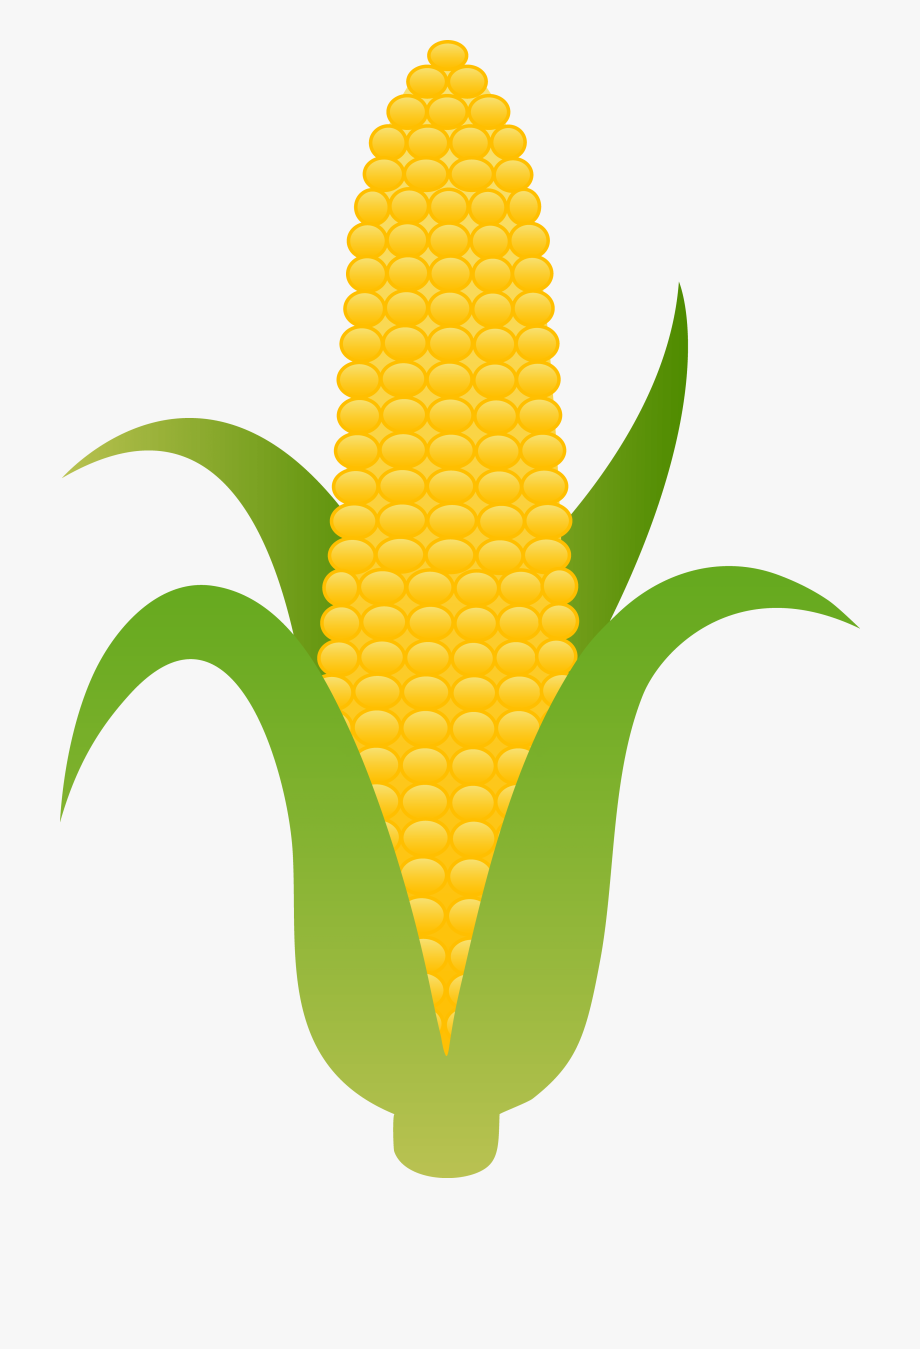 jpg freeuse download Corn clipart. Clip art free images.